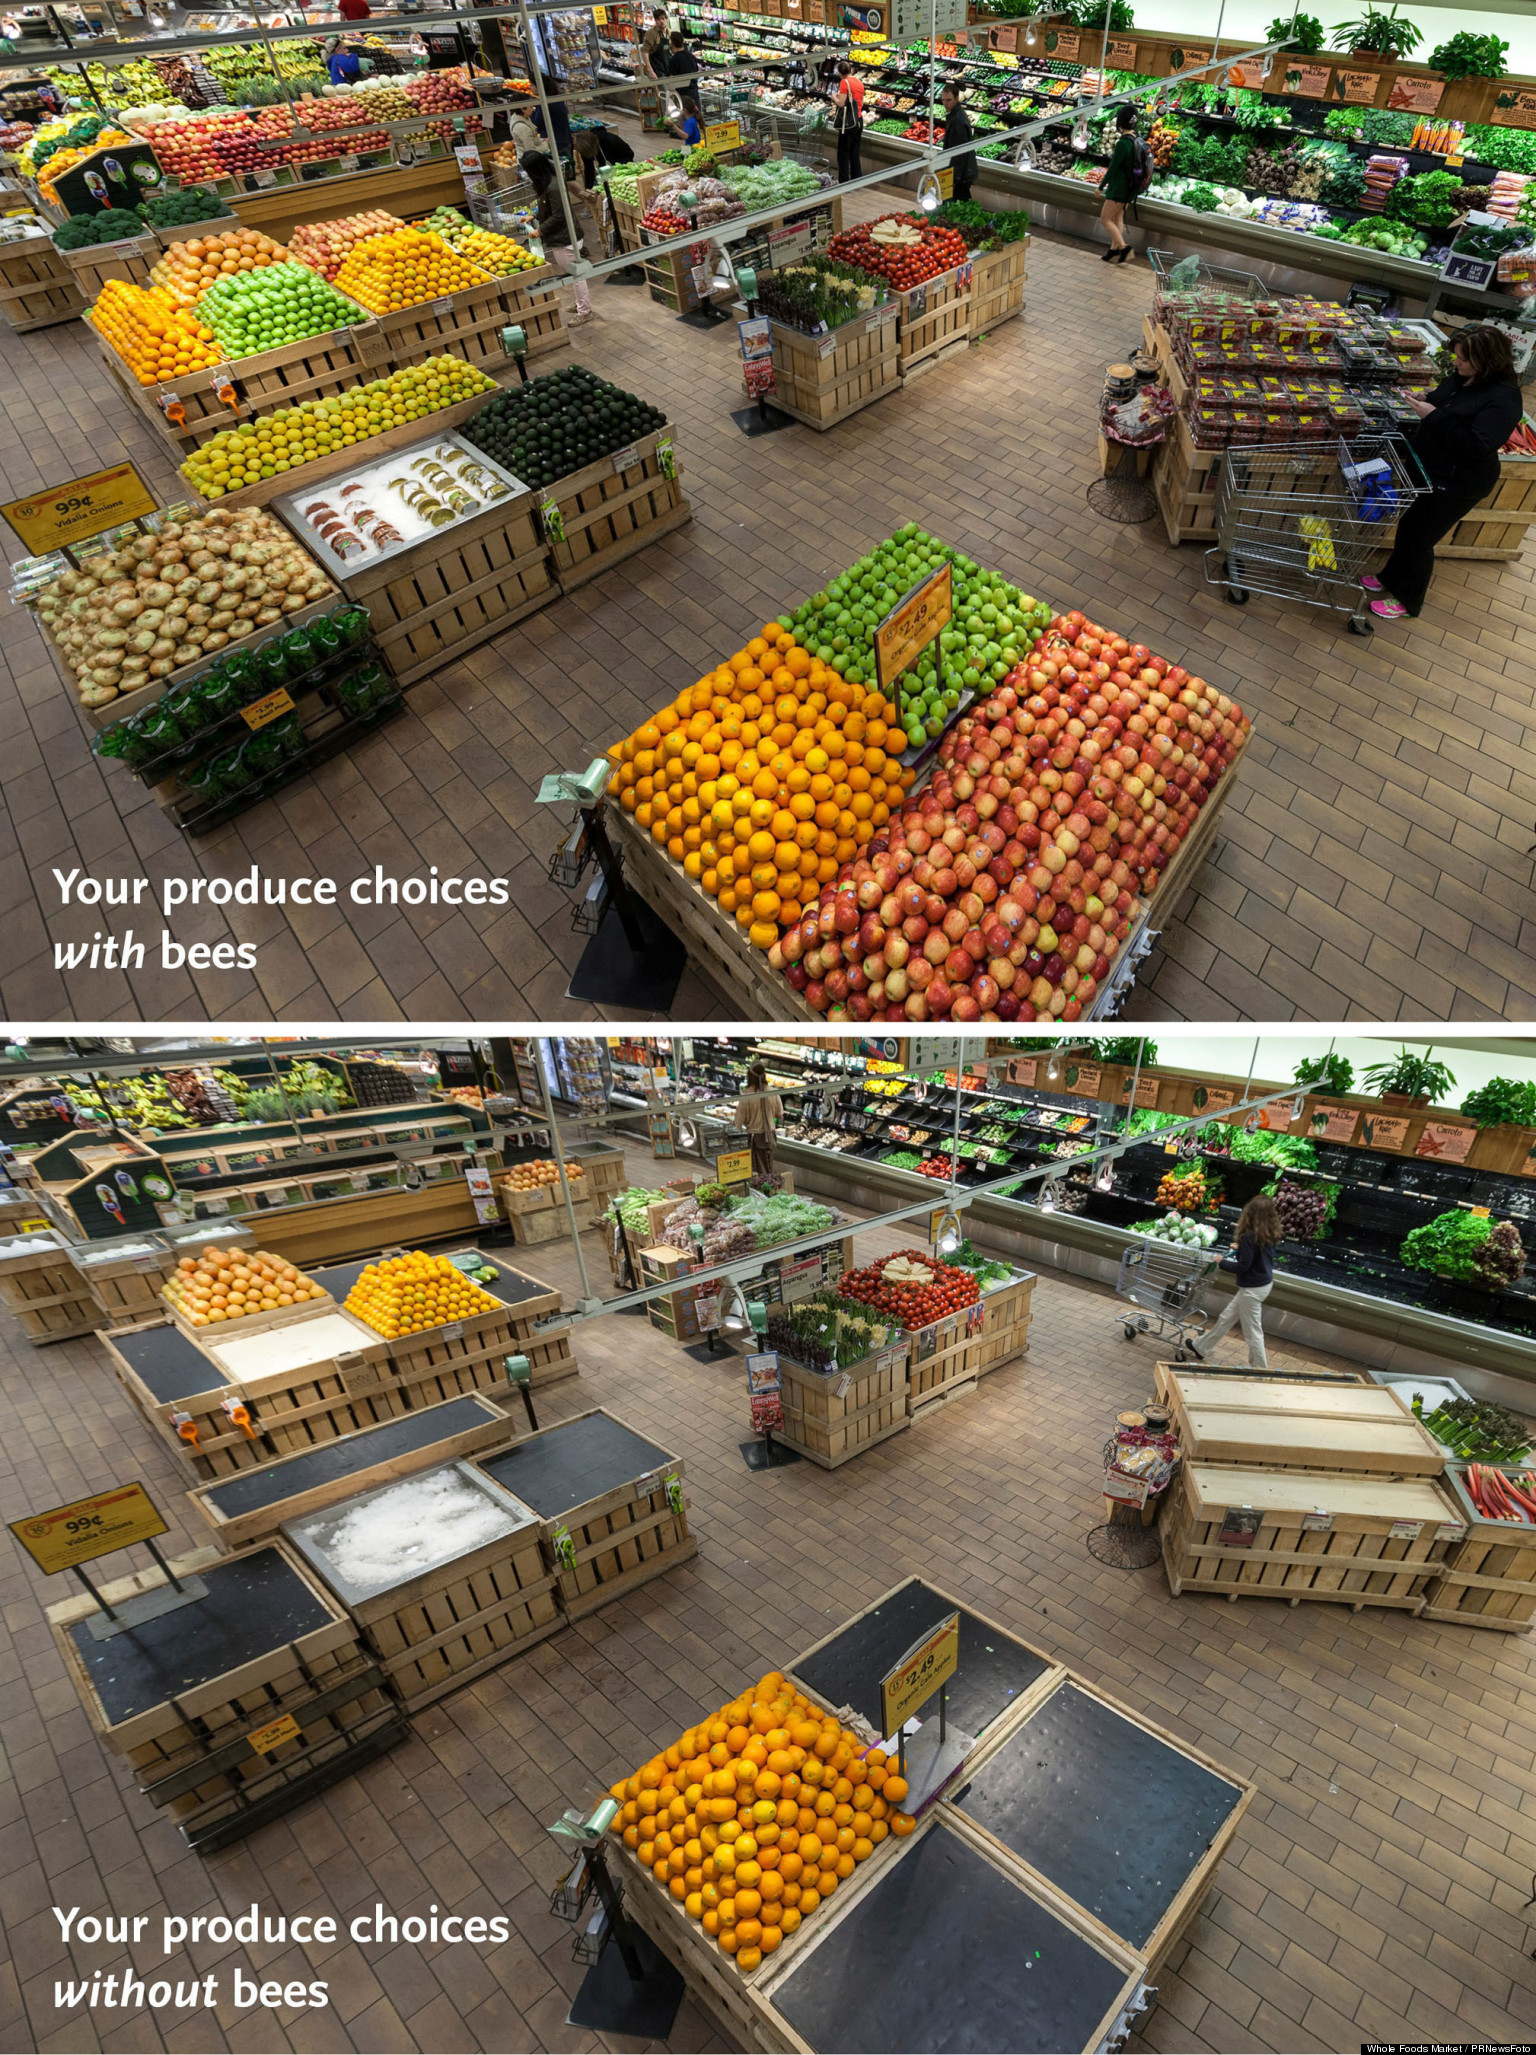 PHOTO: This Is Your Supermarket Without Bees